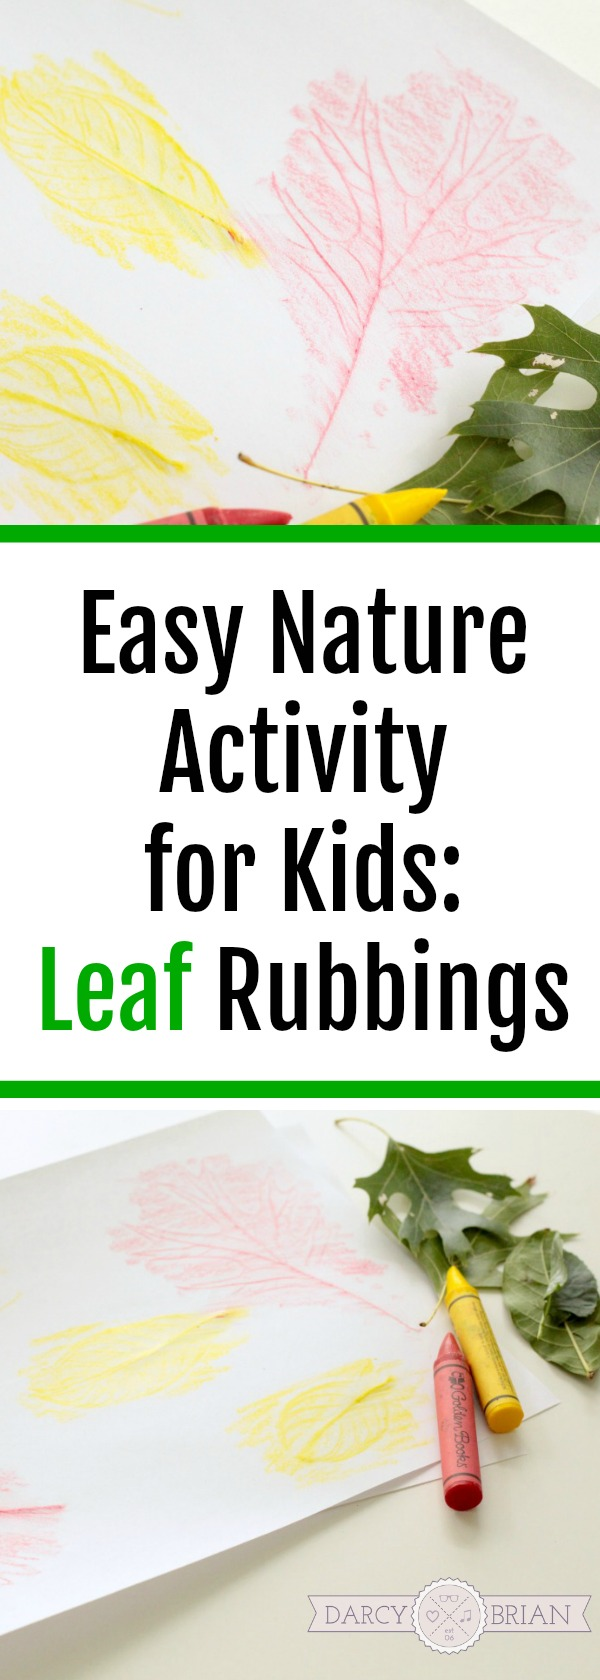 This is such an easy and fun nature science activity for kids! Leaf rubbing for kids doesn't require a ton of supplies - just fall leaves and crayons! Get the children outside with hands on activities and projects with these leaf rubbings ideas. Perfect for preschool, kindergarten, and first grade.